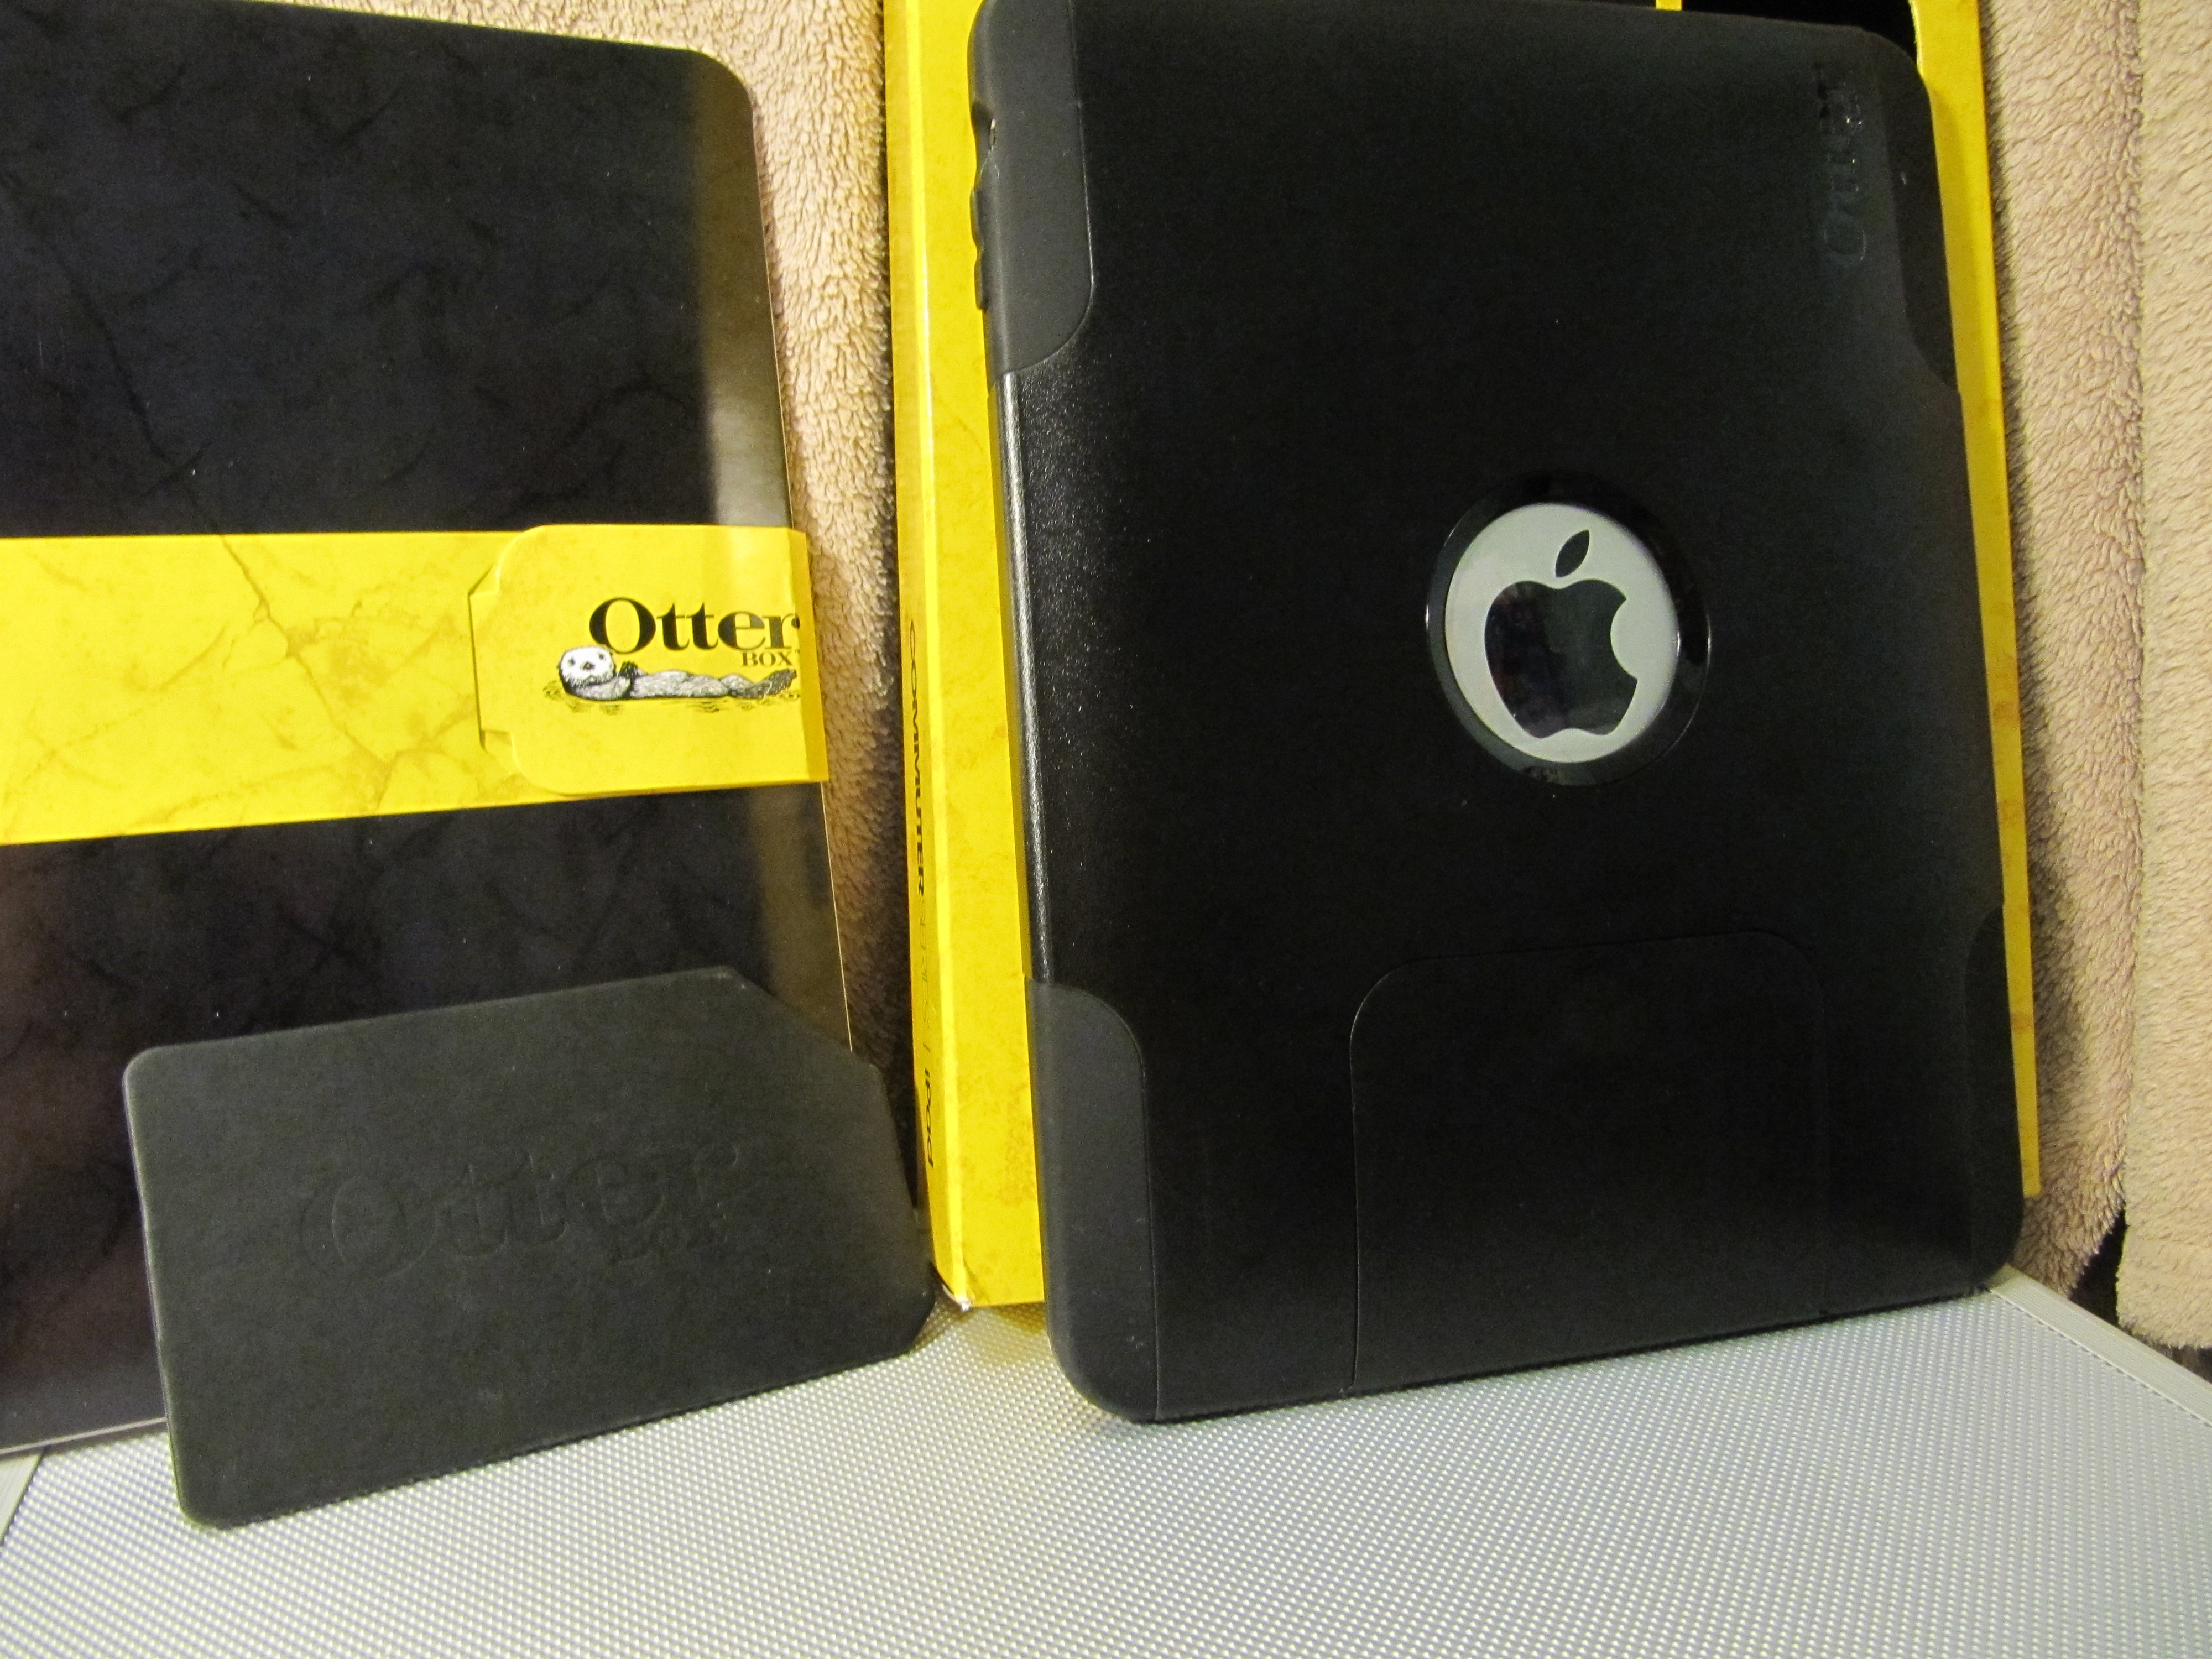 Otterbox Case & Items